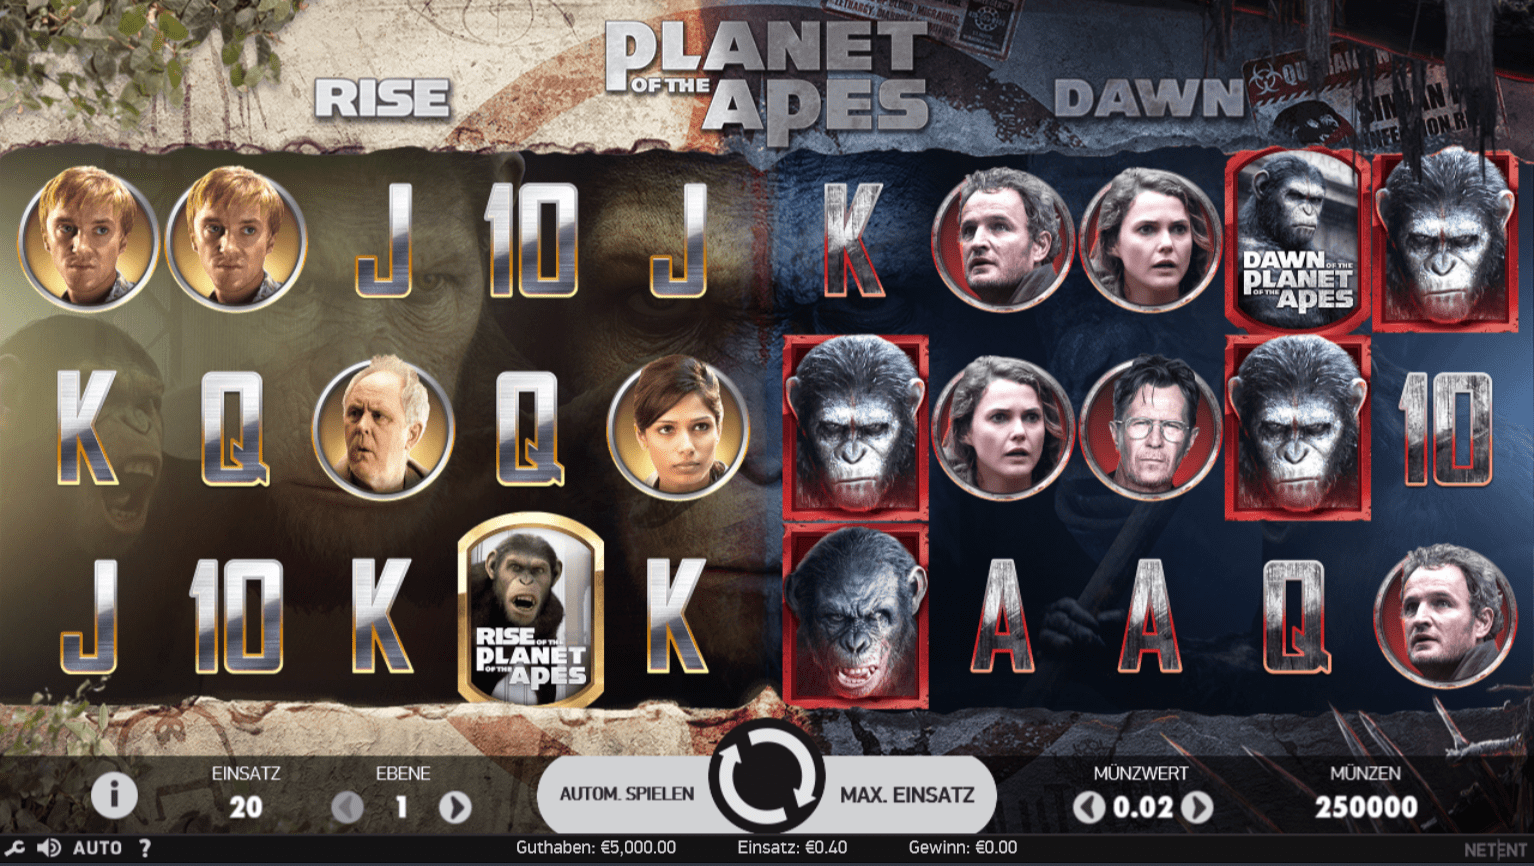 Planet of the Apes kostenlos spielebn - Planet of the Apes